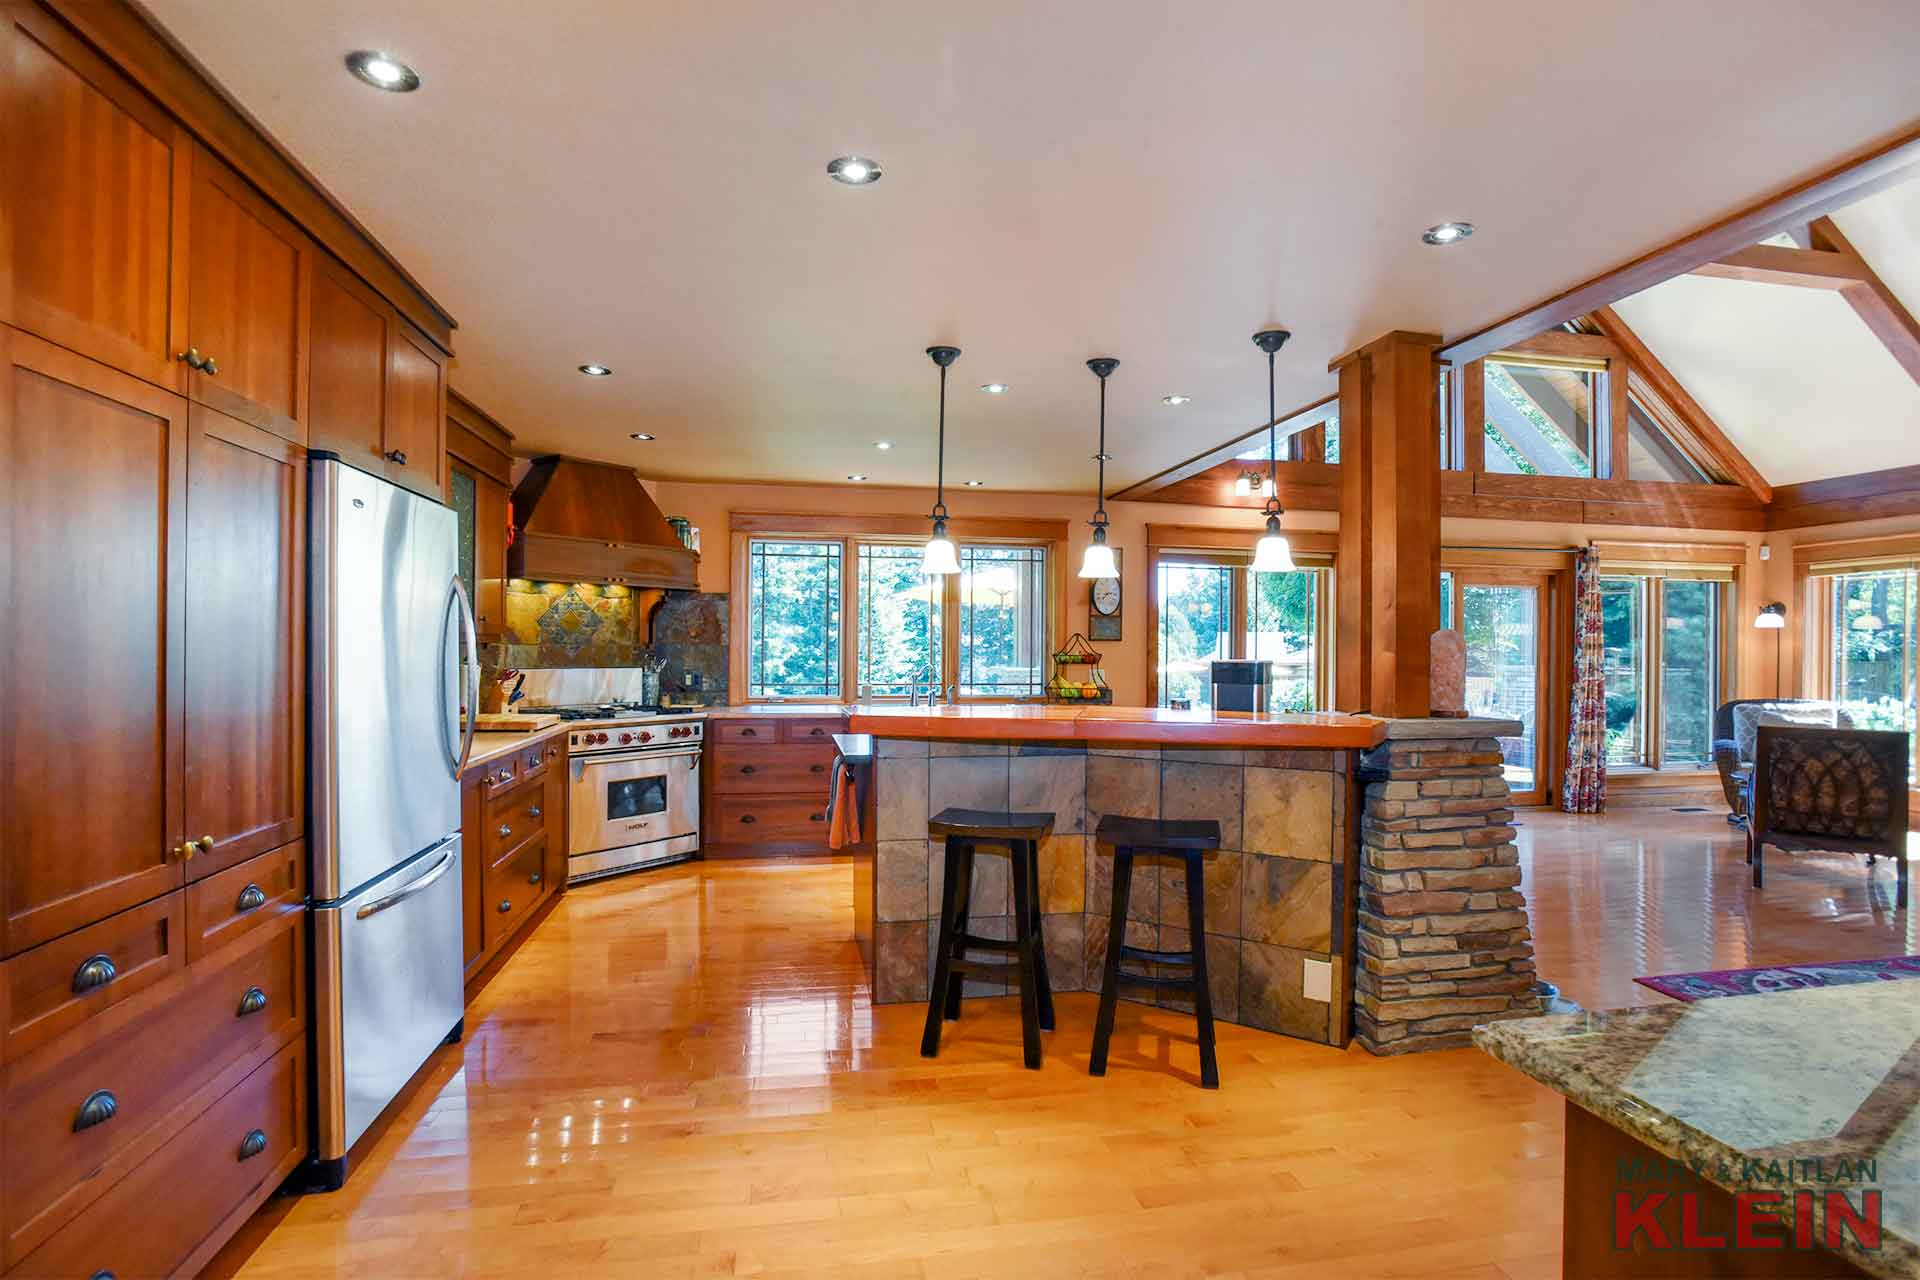 Caledon Village 4 1 Bedroom With Pool For Sale Kait Klein